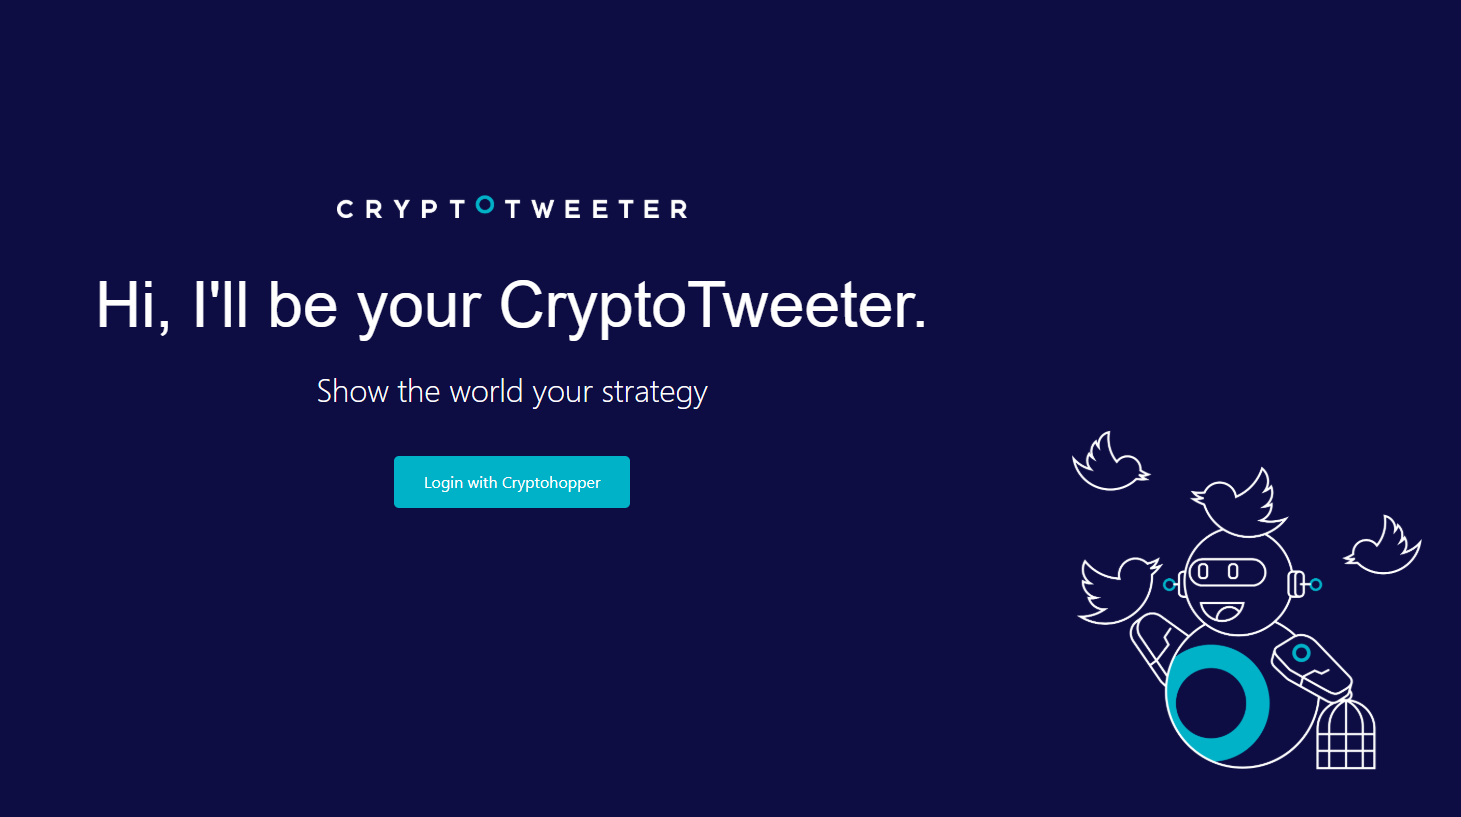 login to cryptotweeter